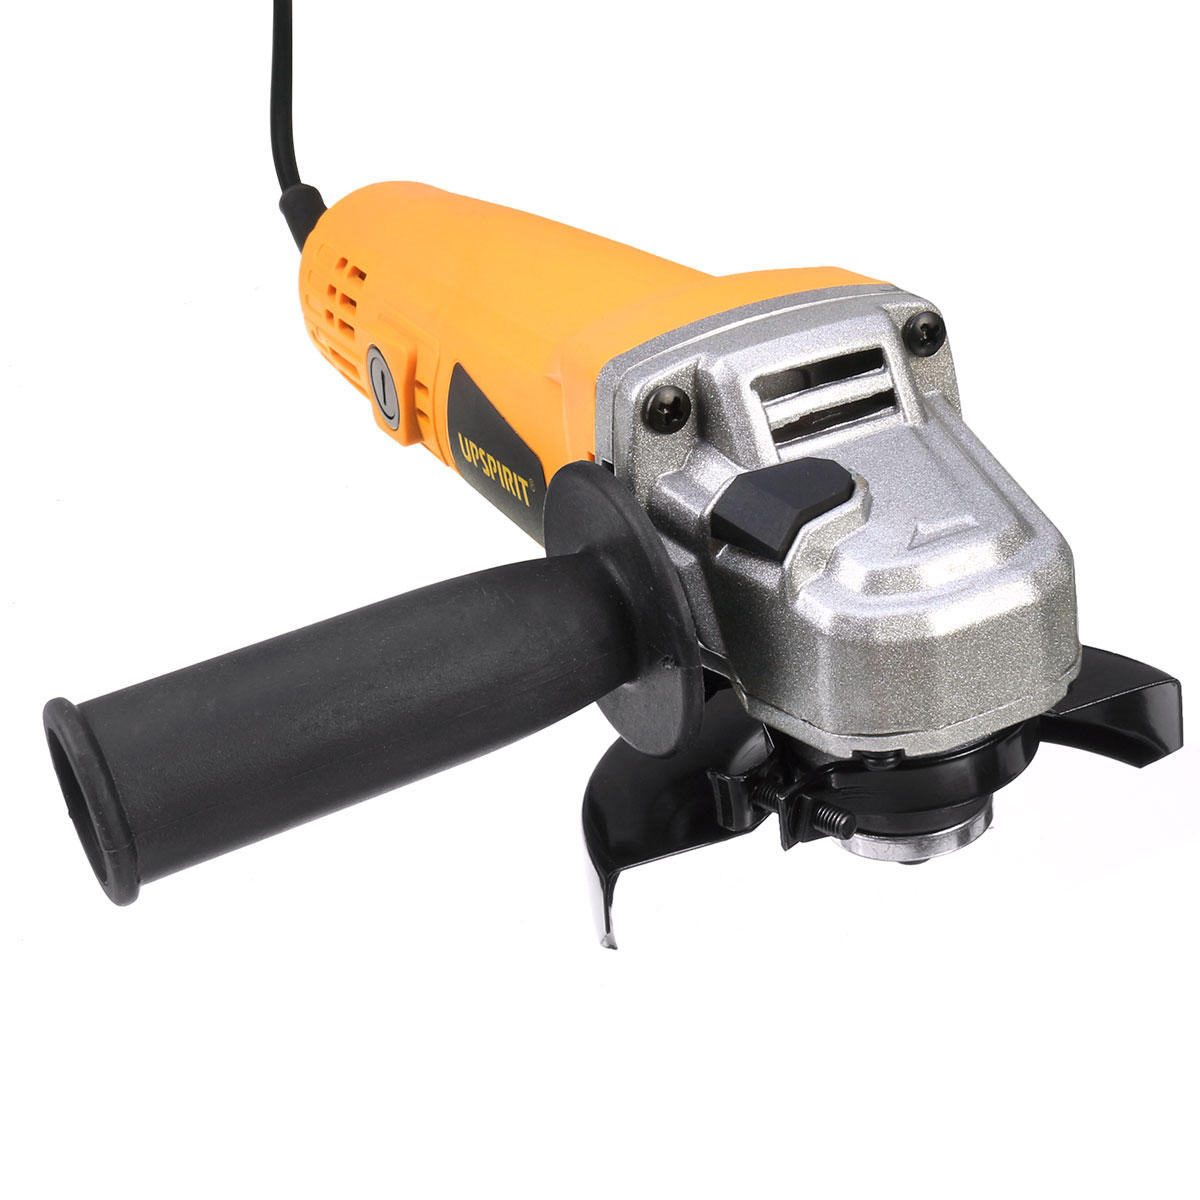 700W Electric Angle Grinder 100mm Polishing Polisher Grinding Cutting Tool 10000RPM